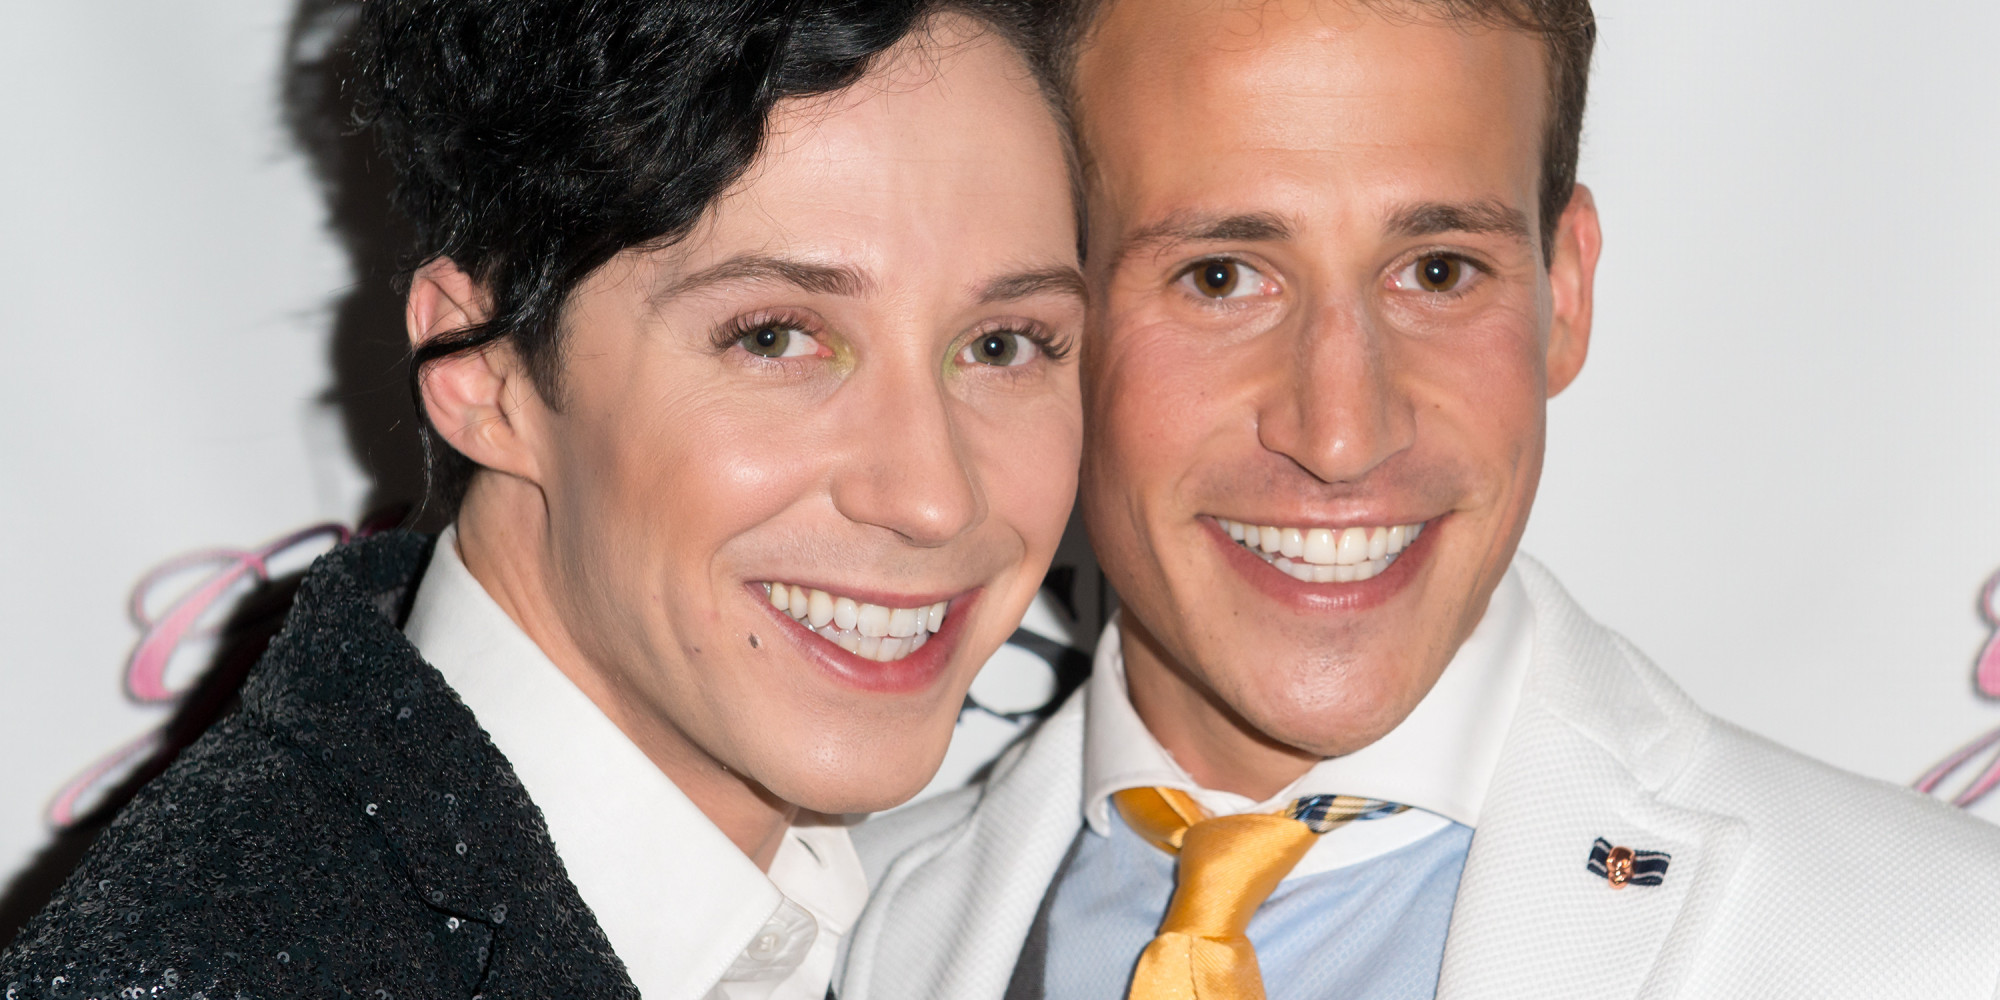 Johnny Weir & Victor Weir-Voronov's Birthday Celebration